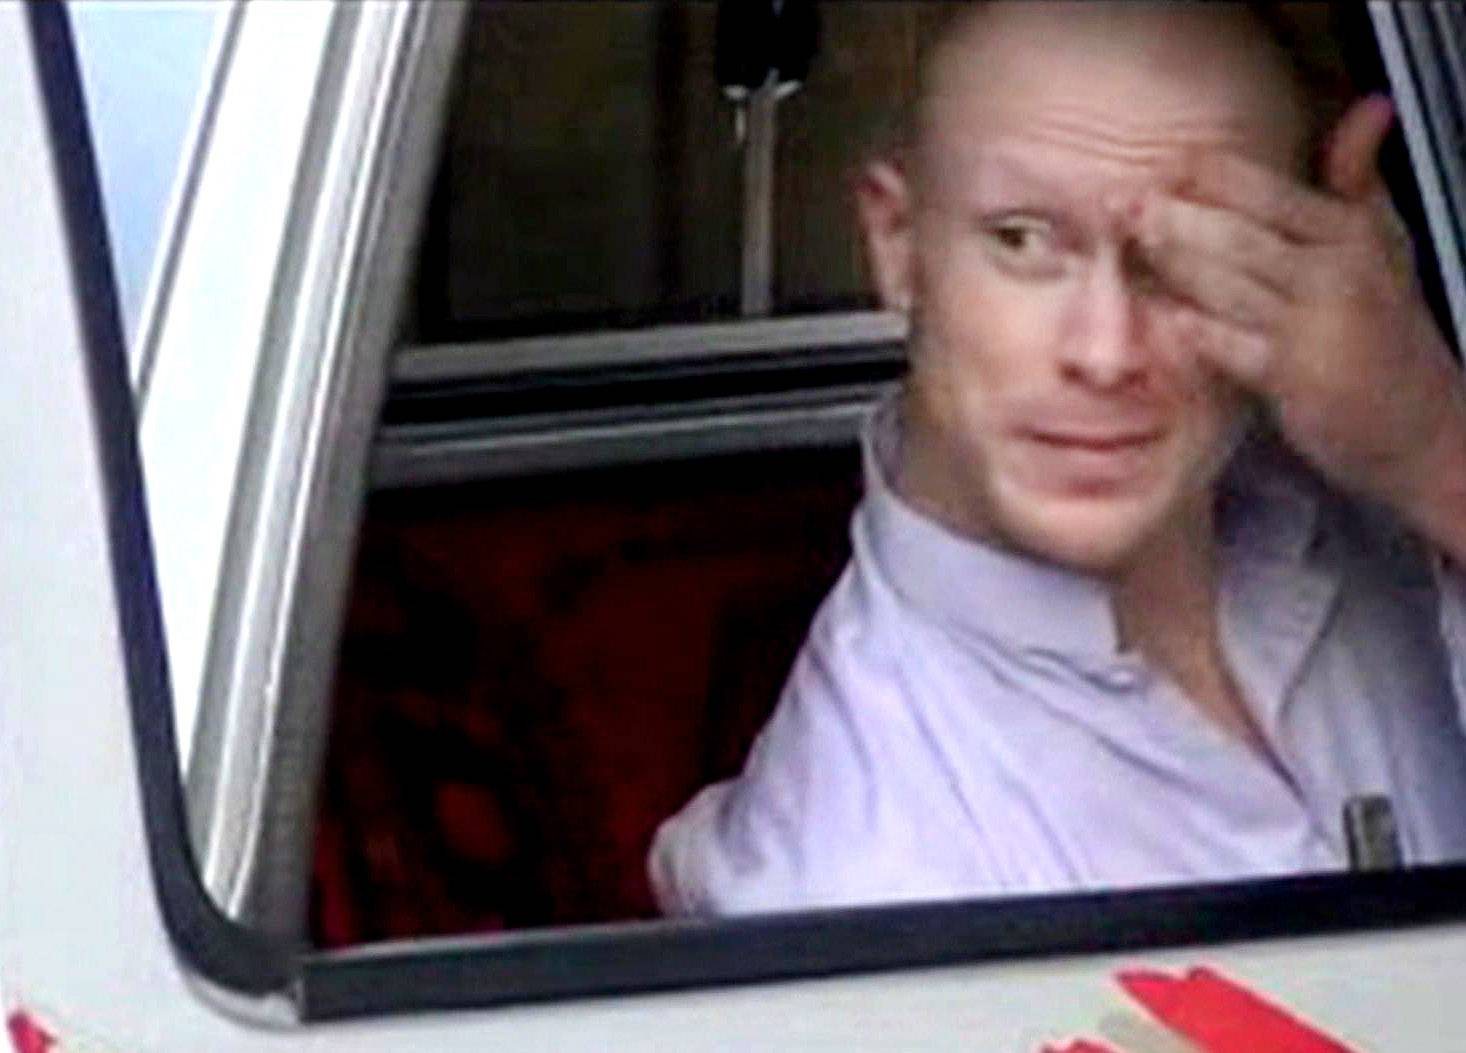 Sgt. Bowe Bergdahl, who has been recovering in Germany after five years as a Taliban captive, is returning to the United States on Friday, but he will not receive the promotion that would have been automatic had he still been held prisoner.